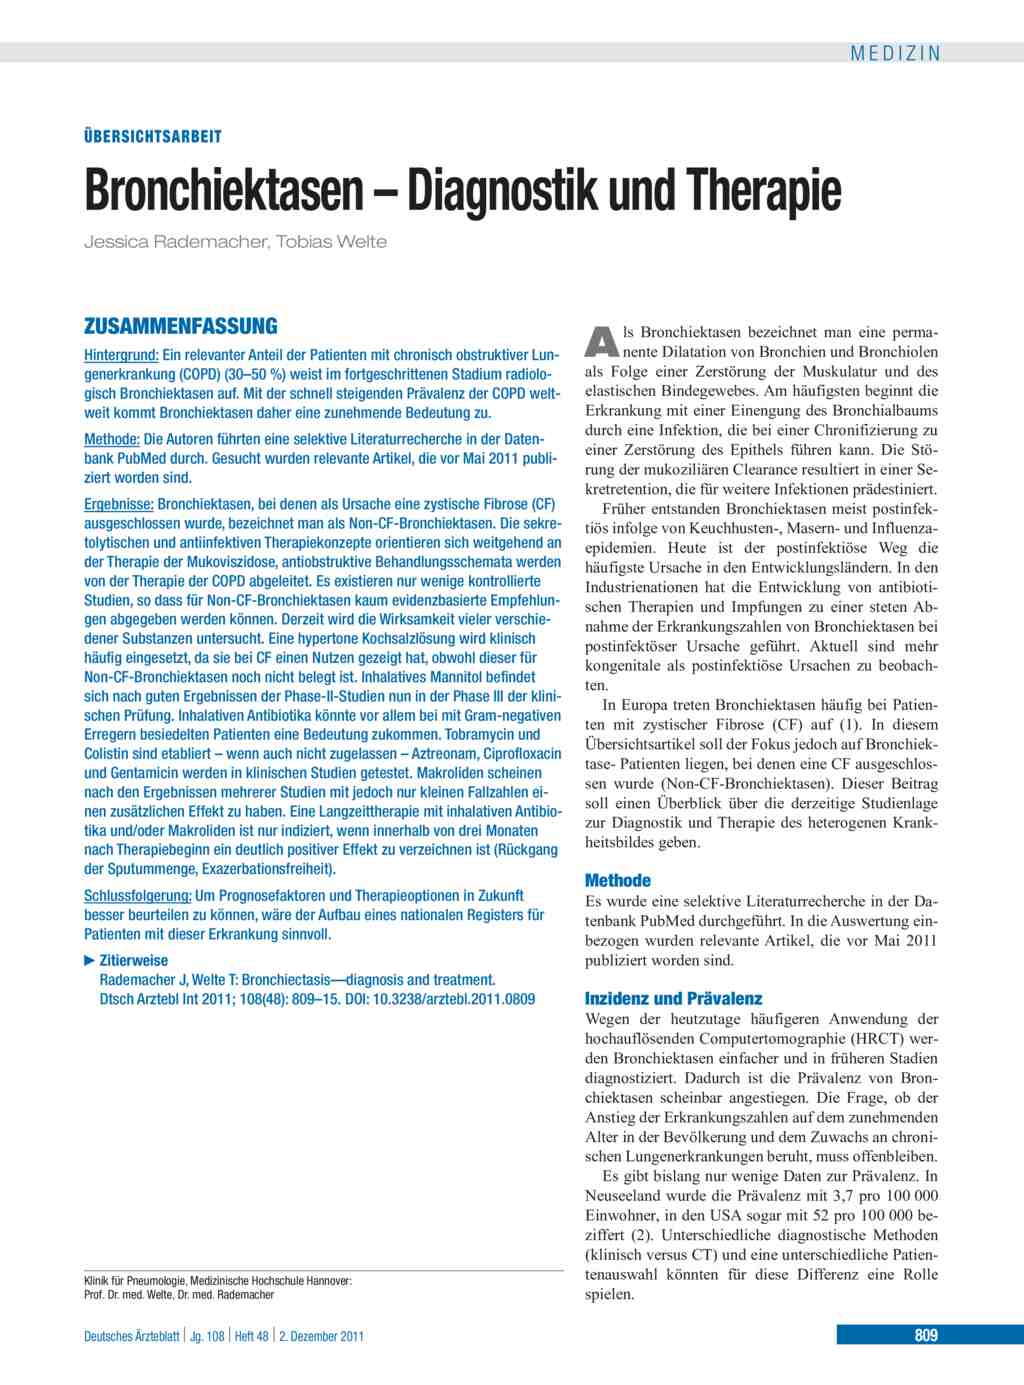 Bronchiektasen – Diagnostik und Therapie